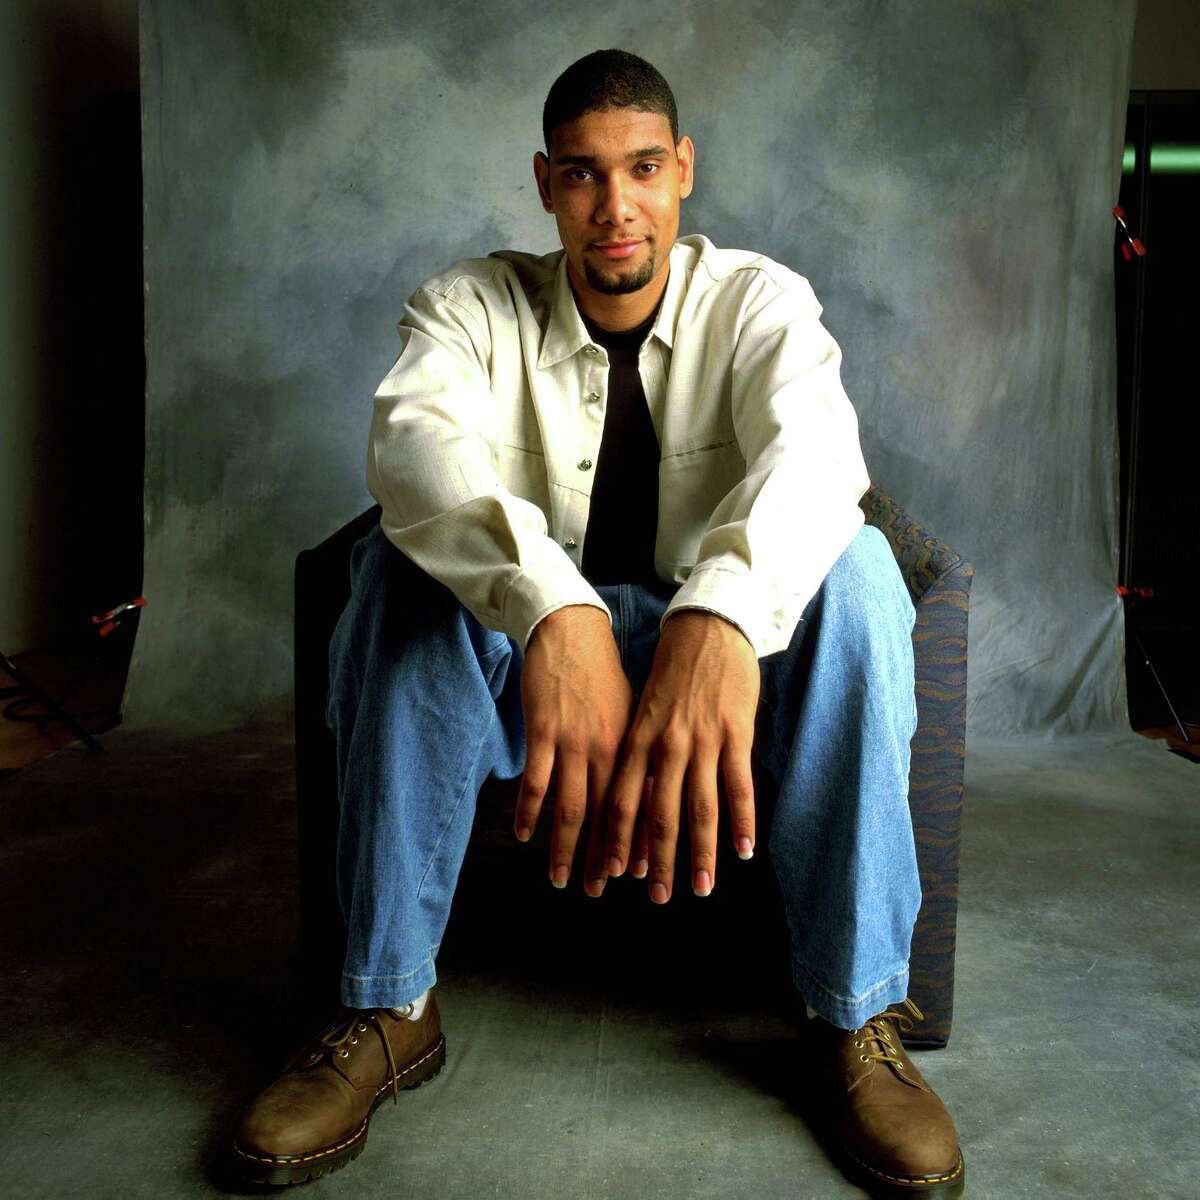 Tim Duncan's down-to-earth style hasn't evolved much in the years since he turned pro in the NBA. Here he is in his rookie year, 1998.